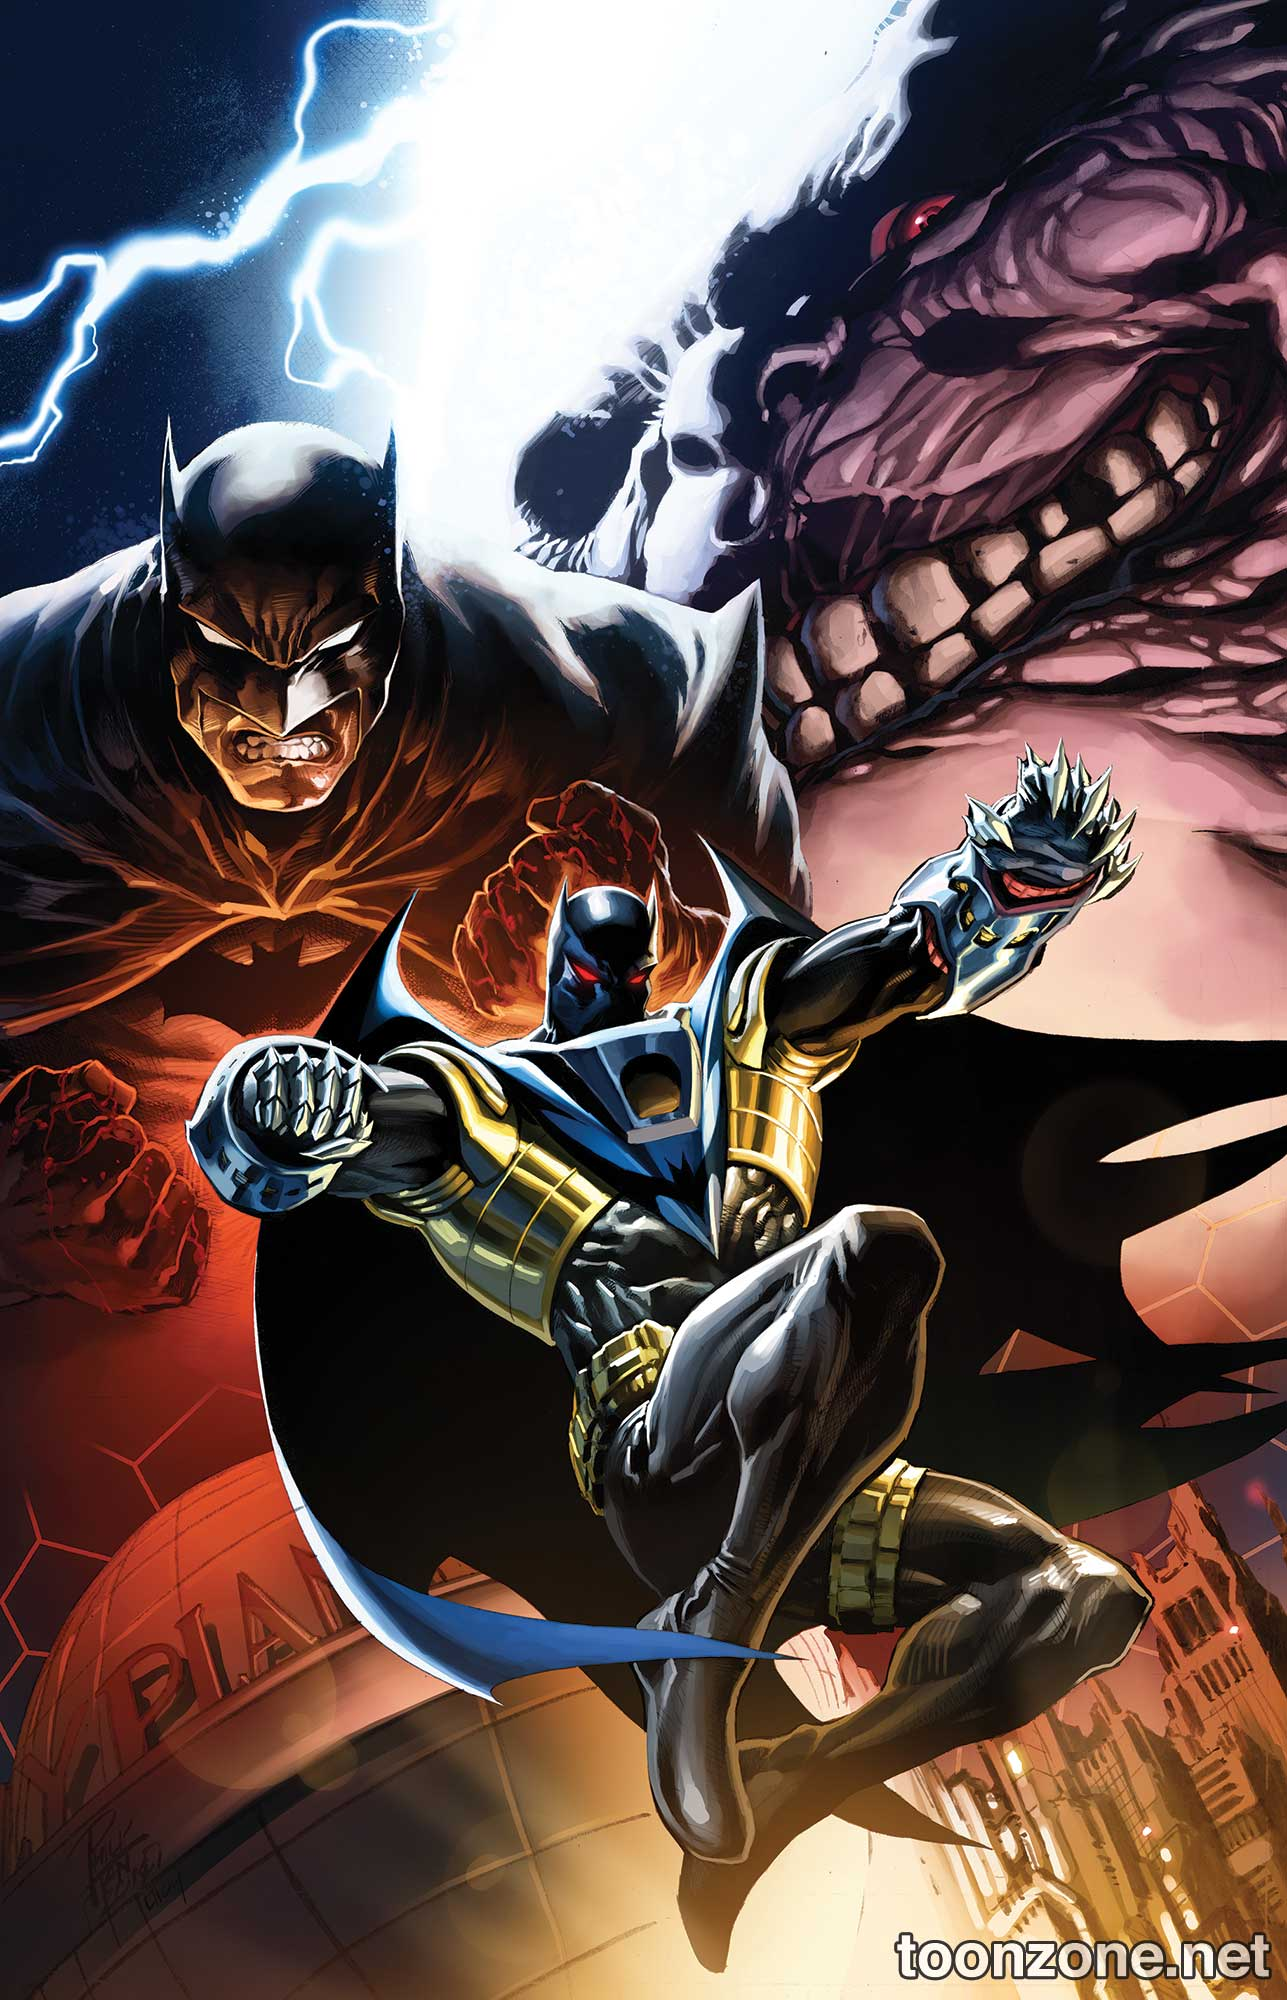 CONVERGENCE: BATMAN: SHADOW OF THE BAT #1